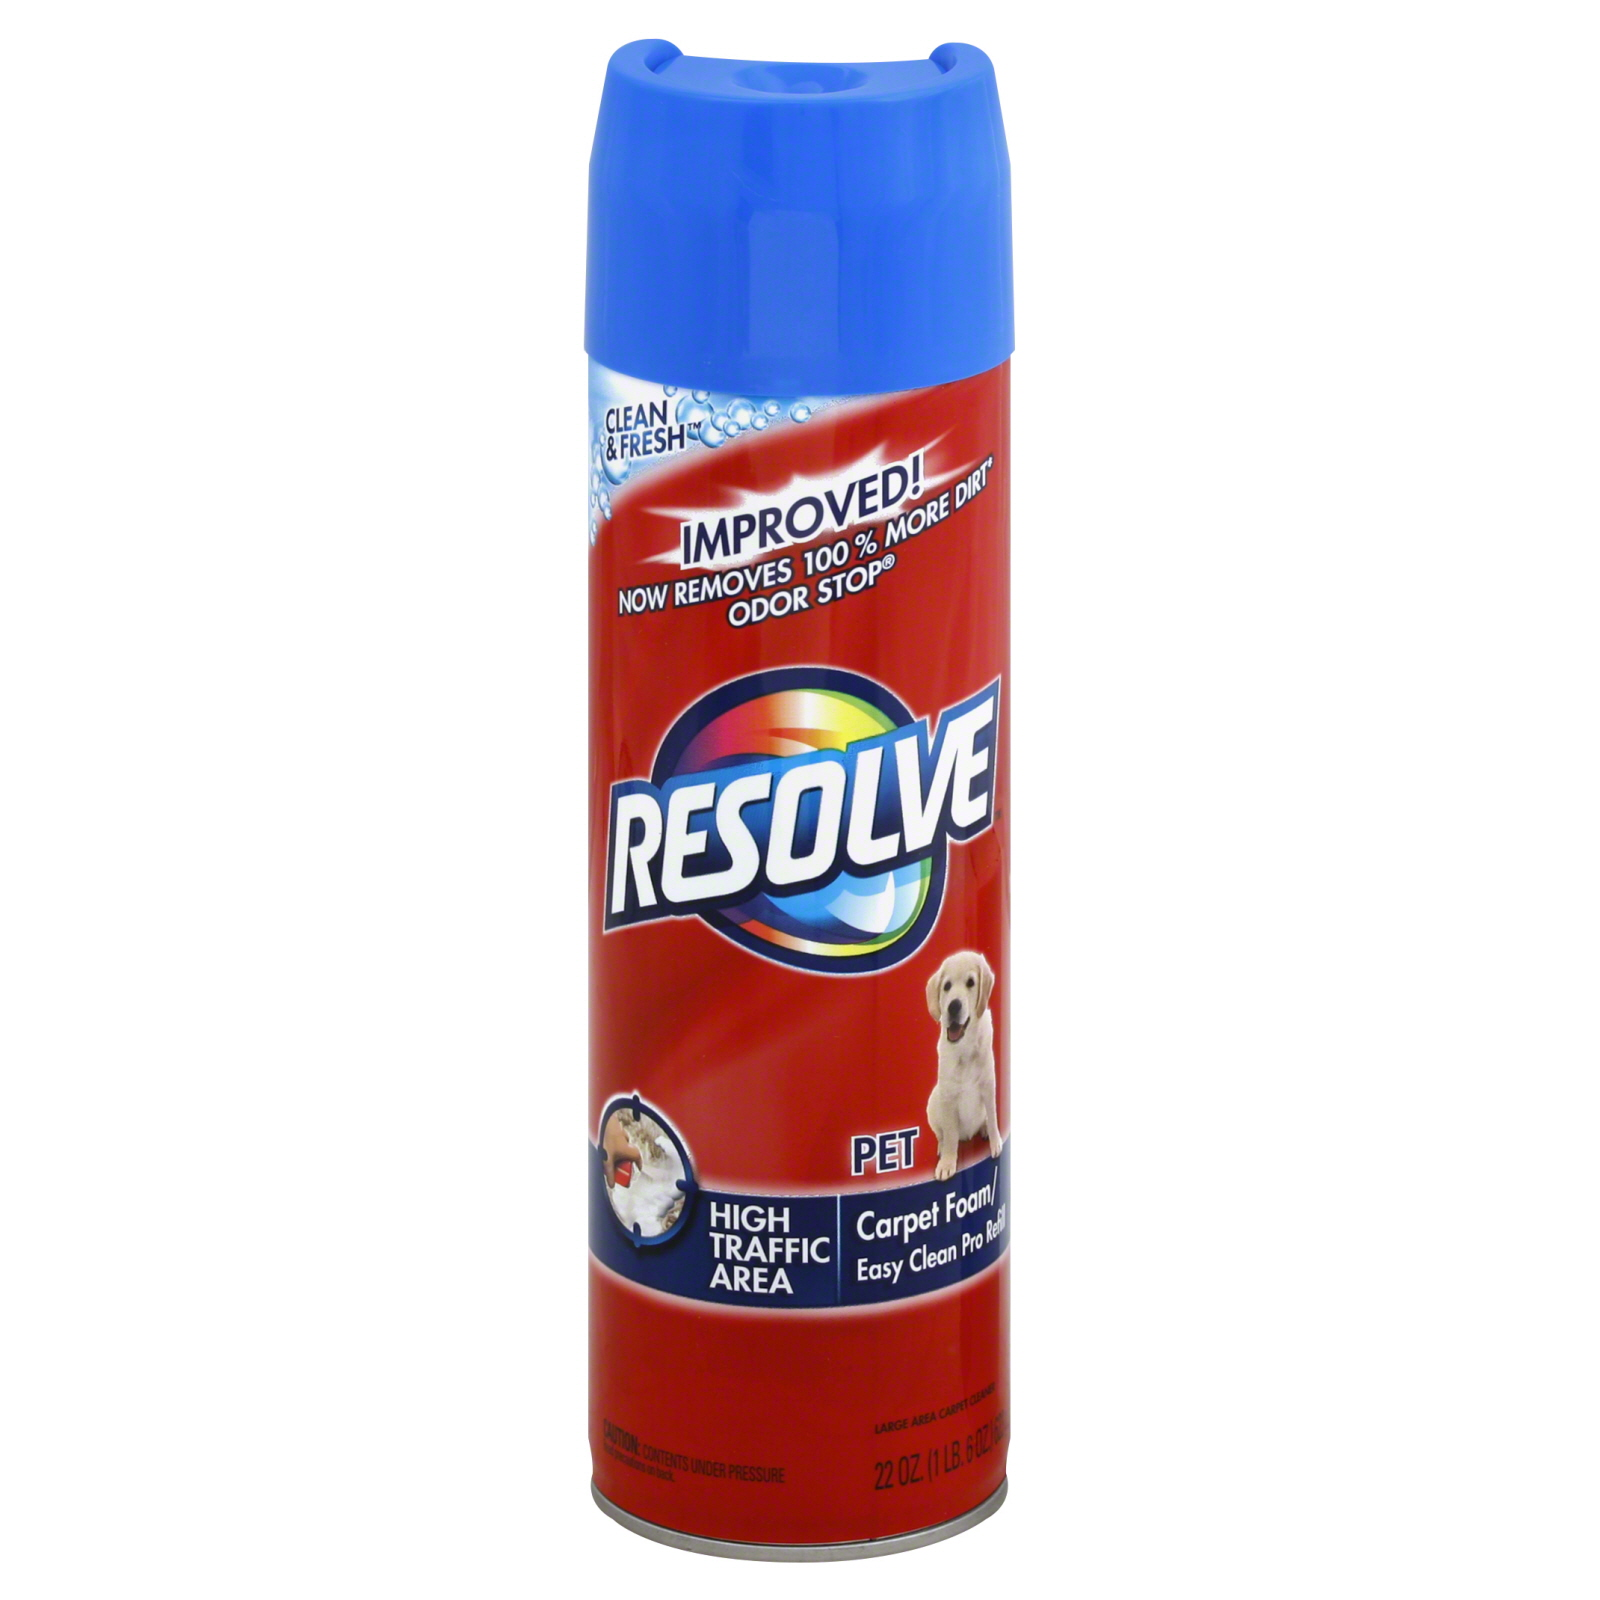 Resolve  Carpet Foam, Easy Clean Pro